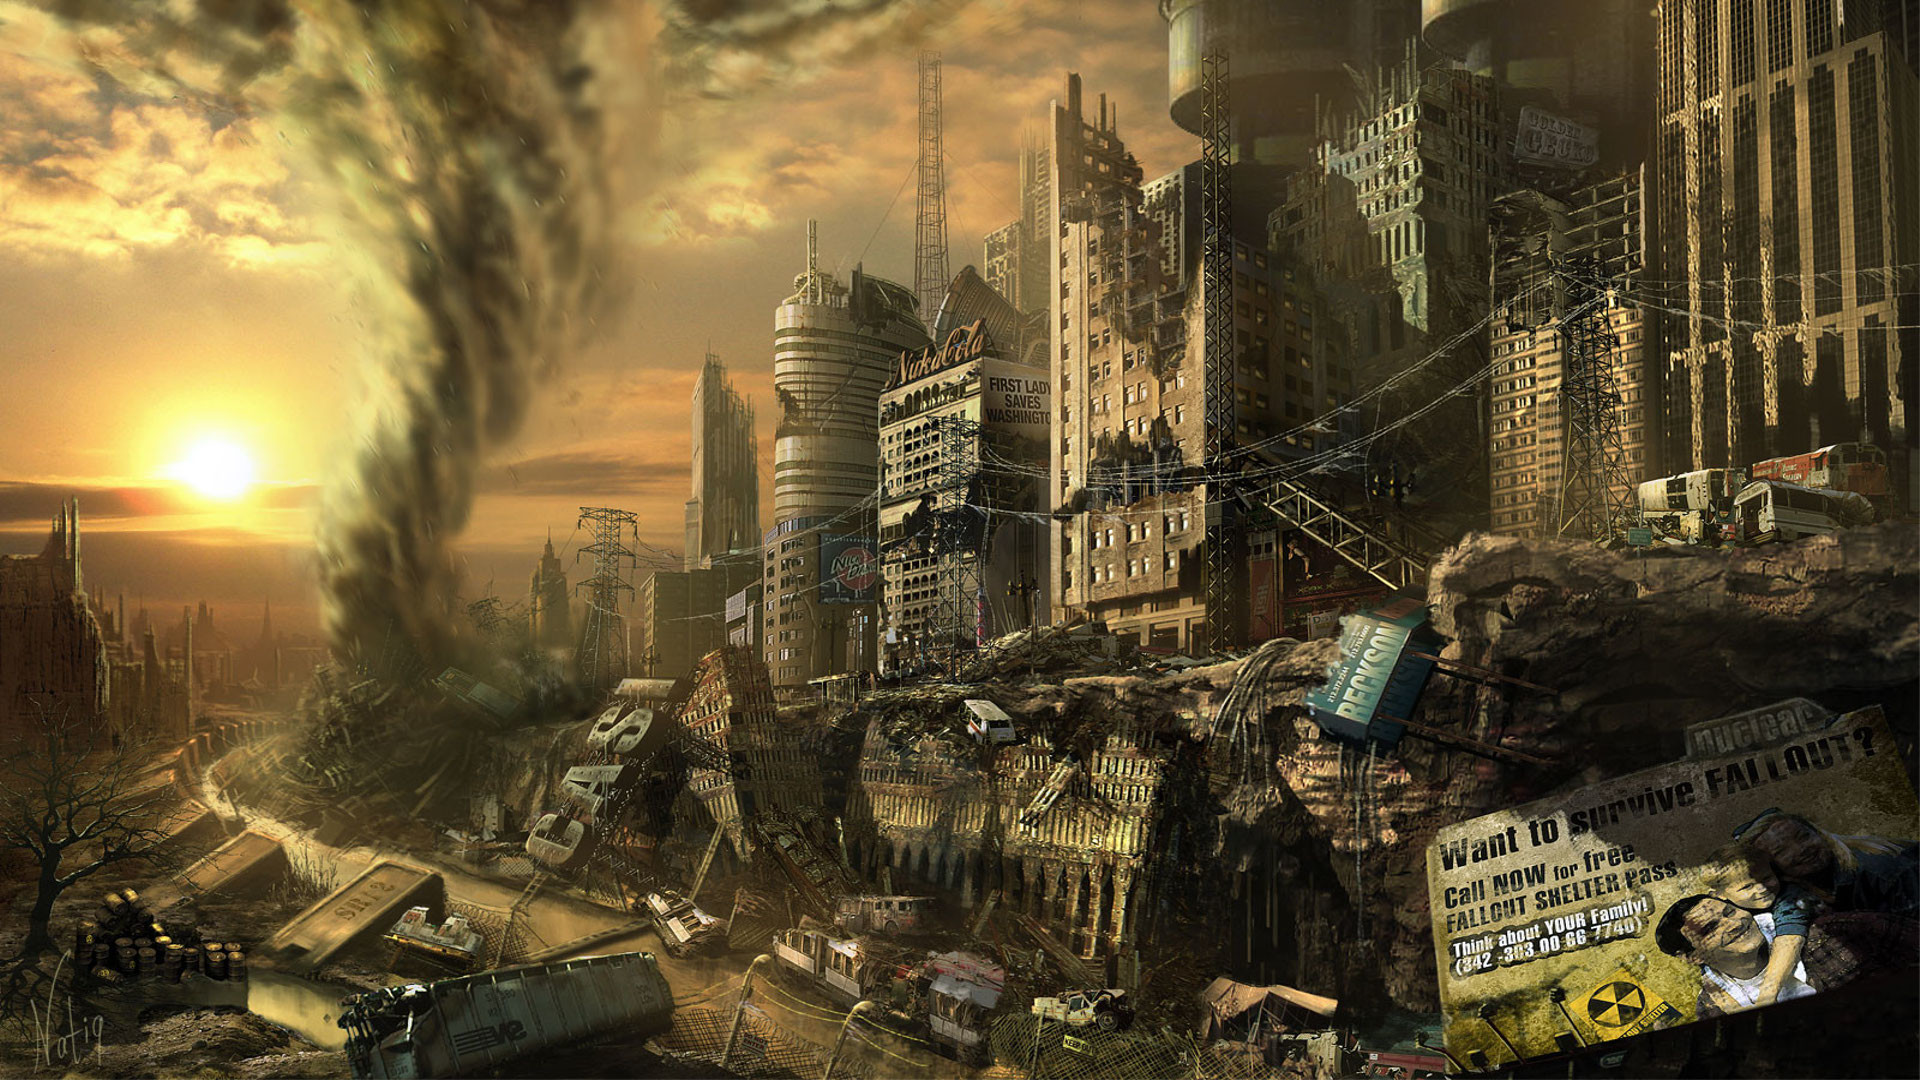 Res: 1920x1080, Fallout 3 HD Wallpapers 11 - 1920 X 1080